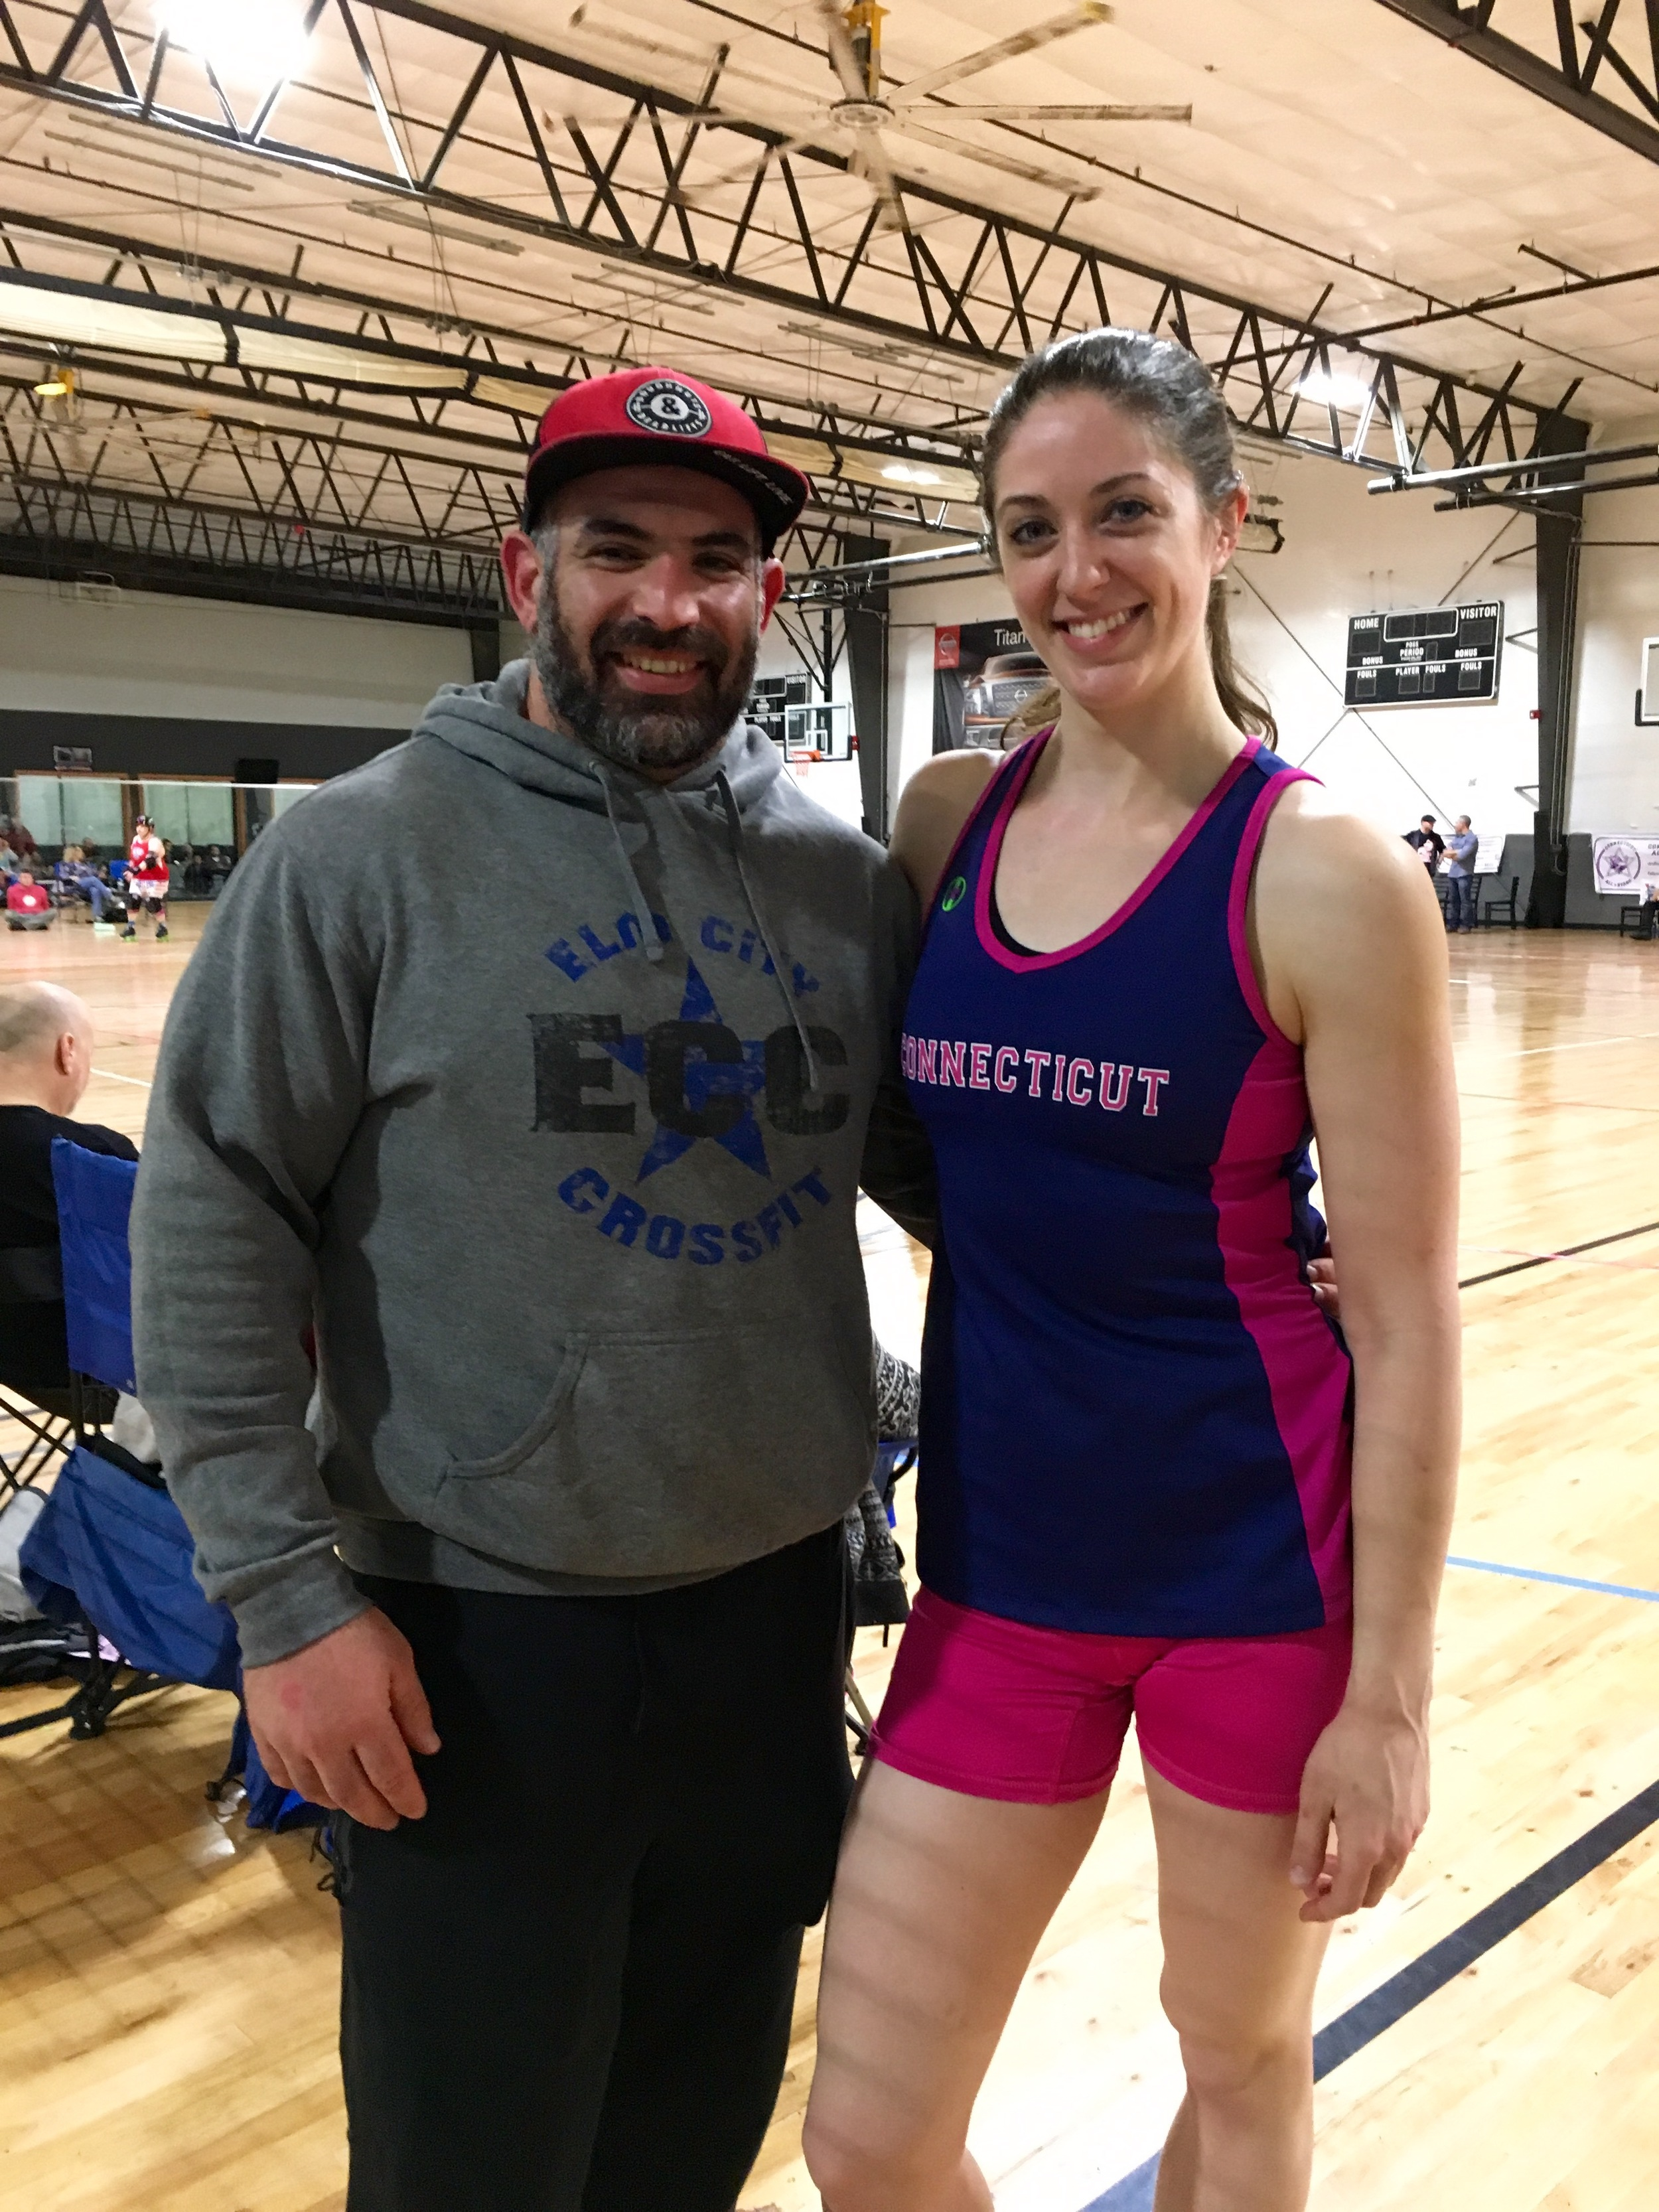 Elm City Supports our very own Heather better known as Sinin Sonic in CT Roller Derby Allstars